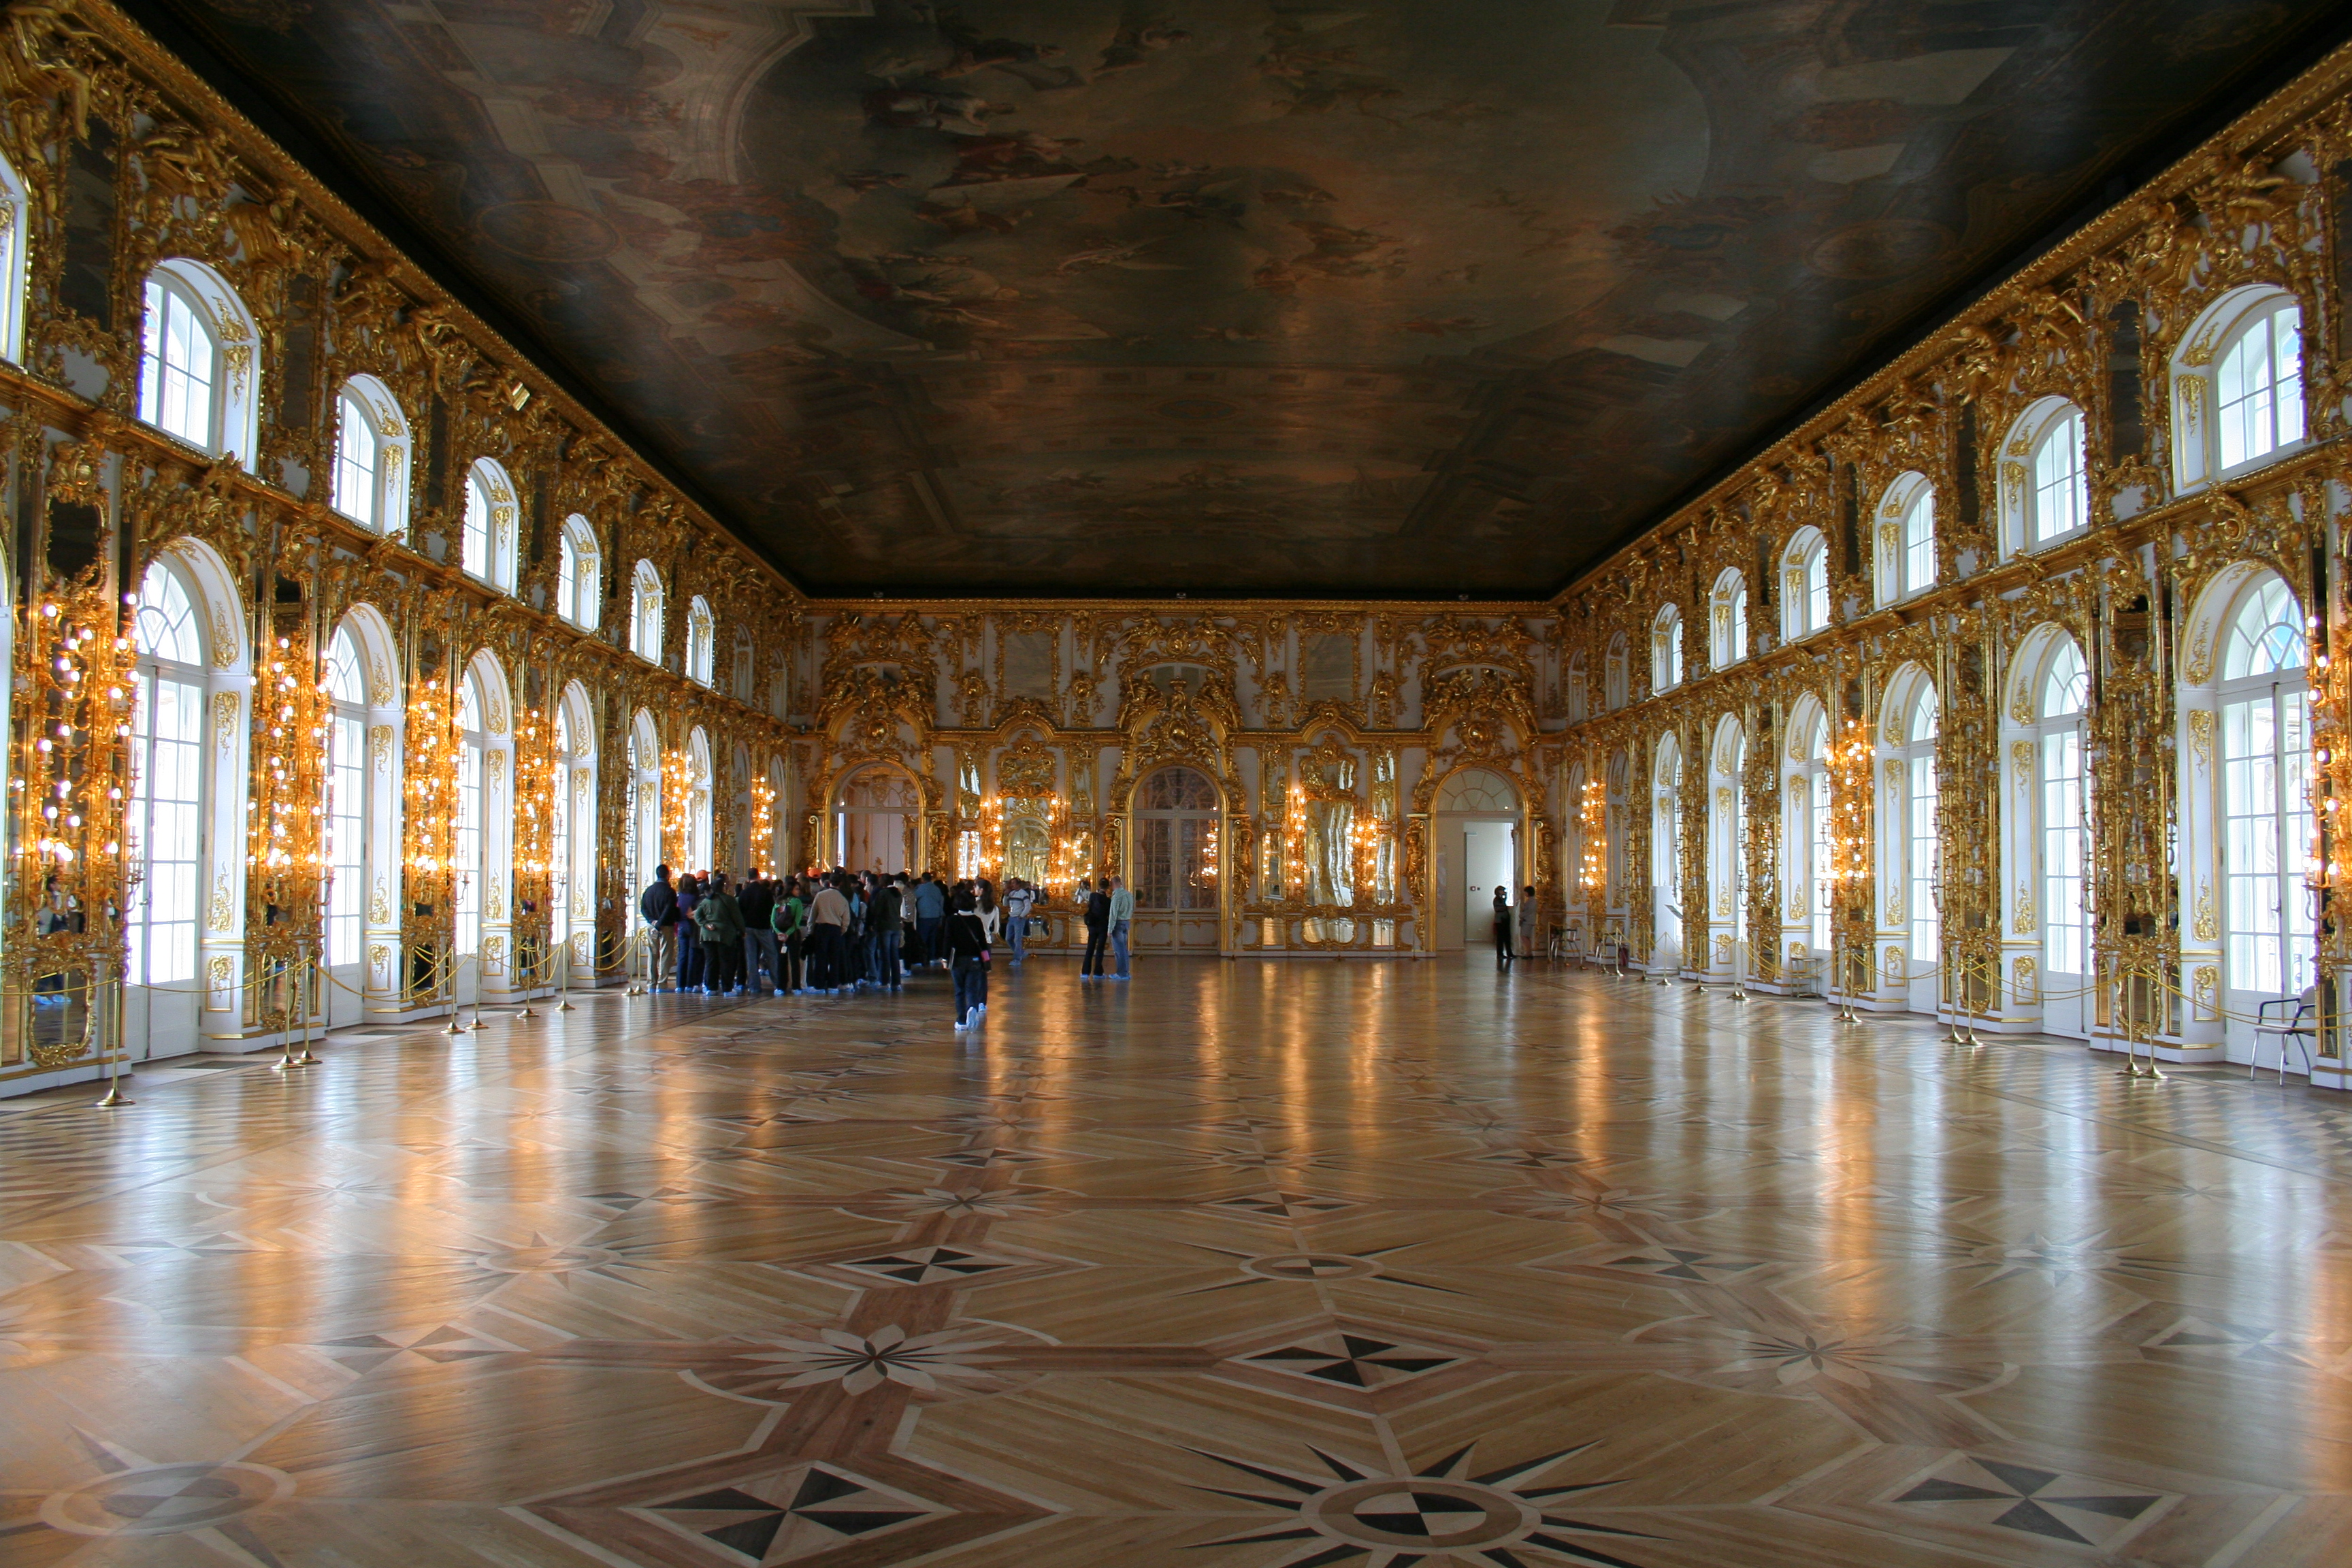 File:Pushkin Catherine Palace Interiors 02